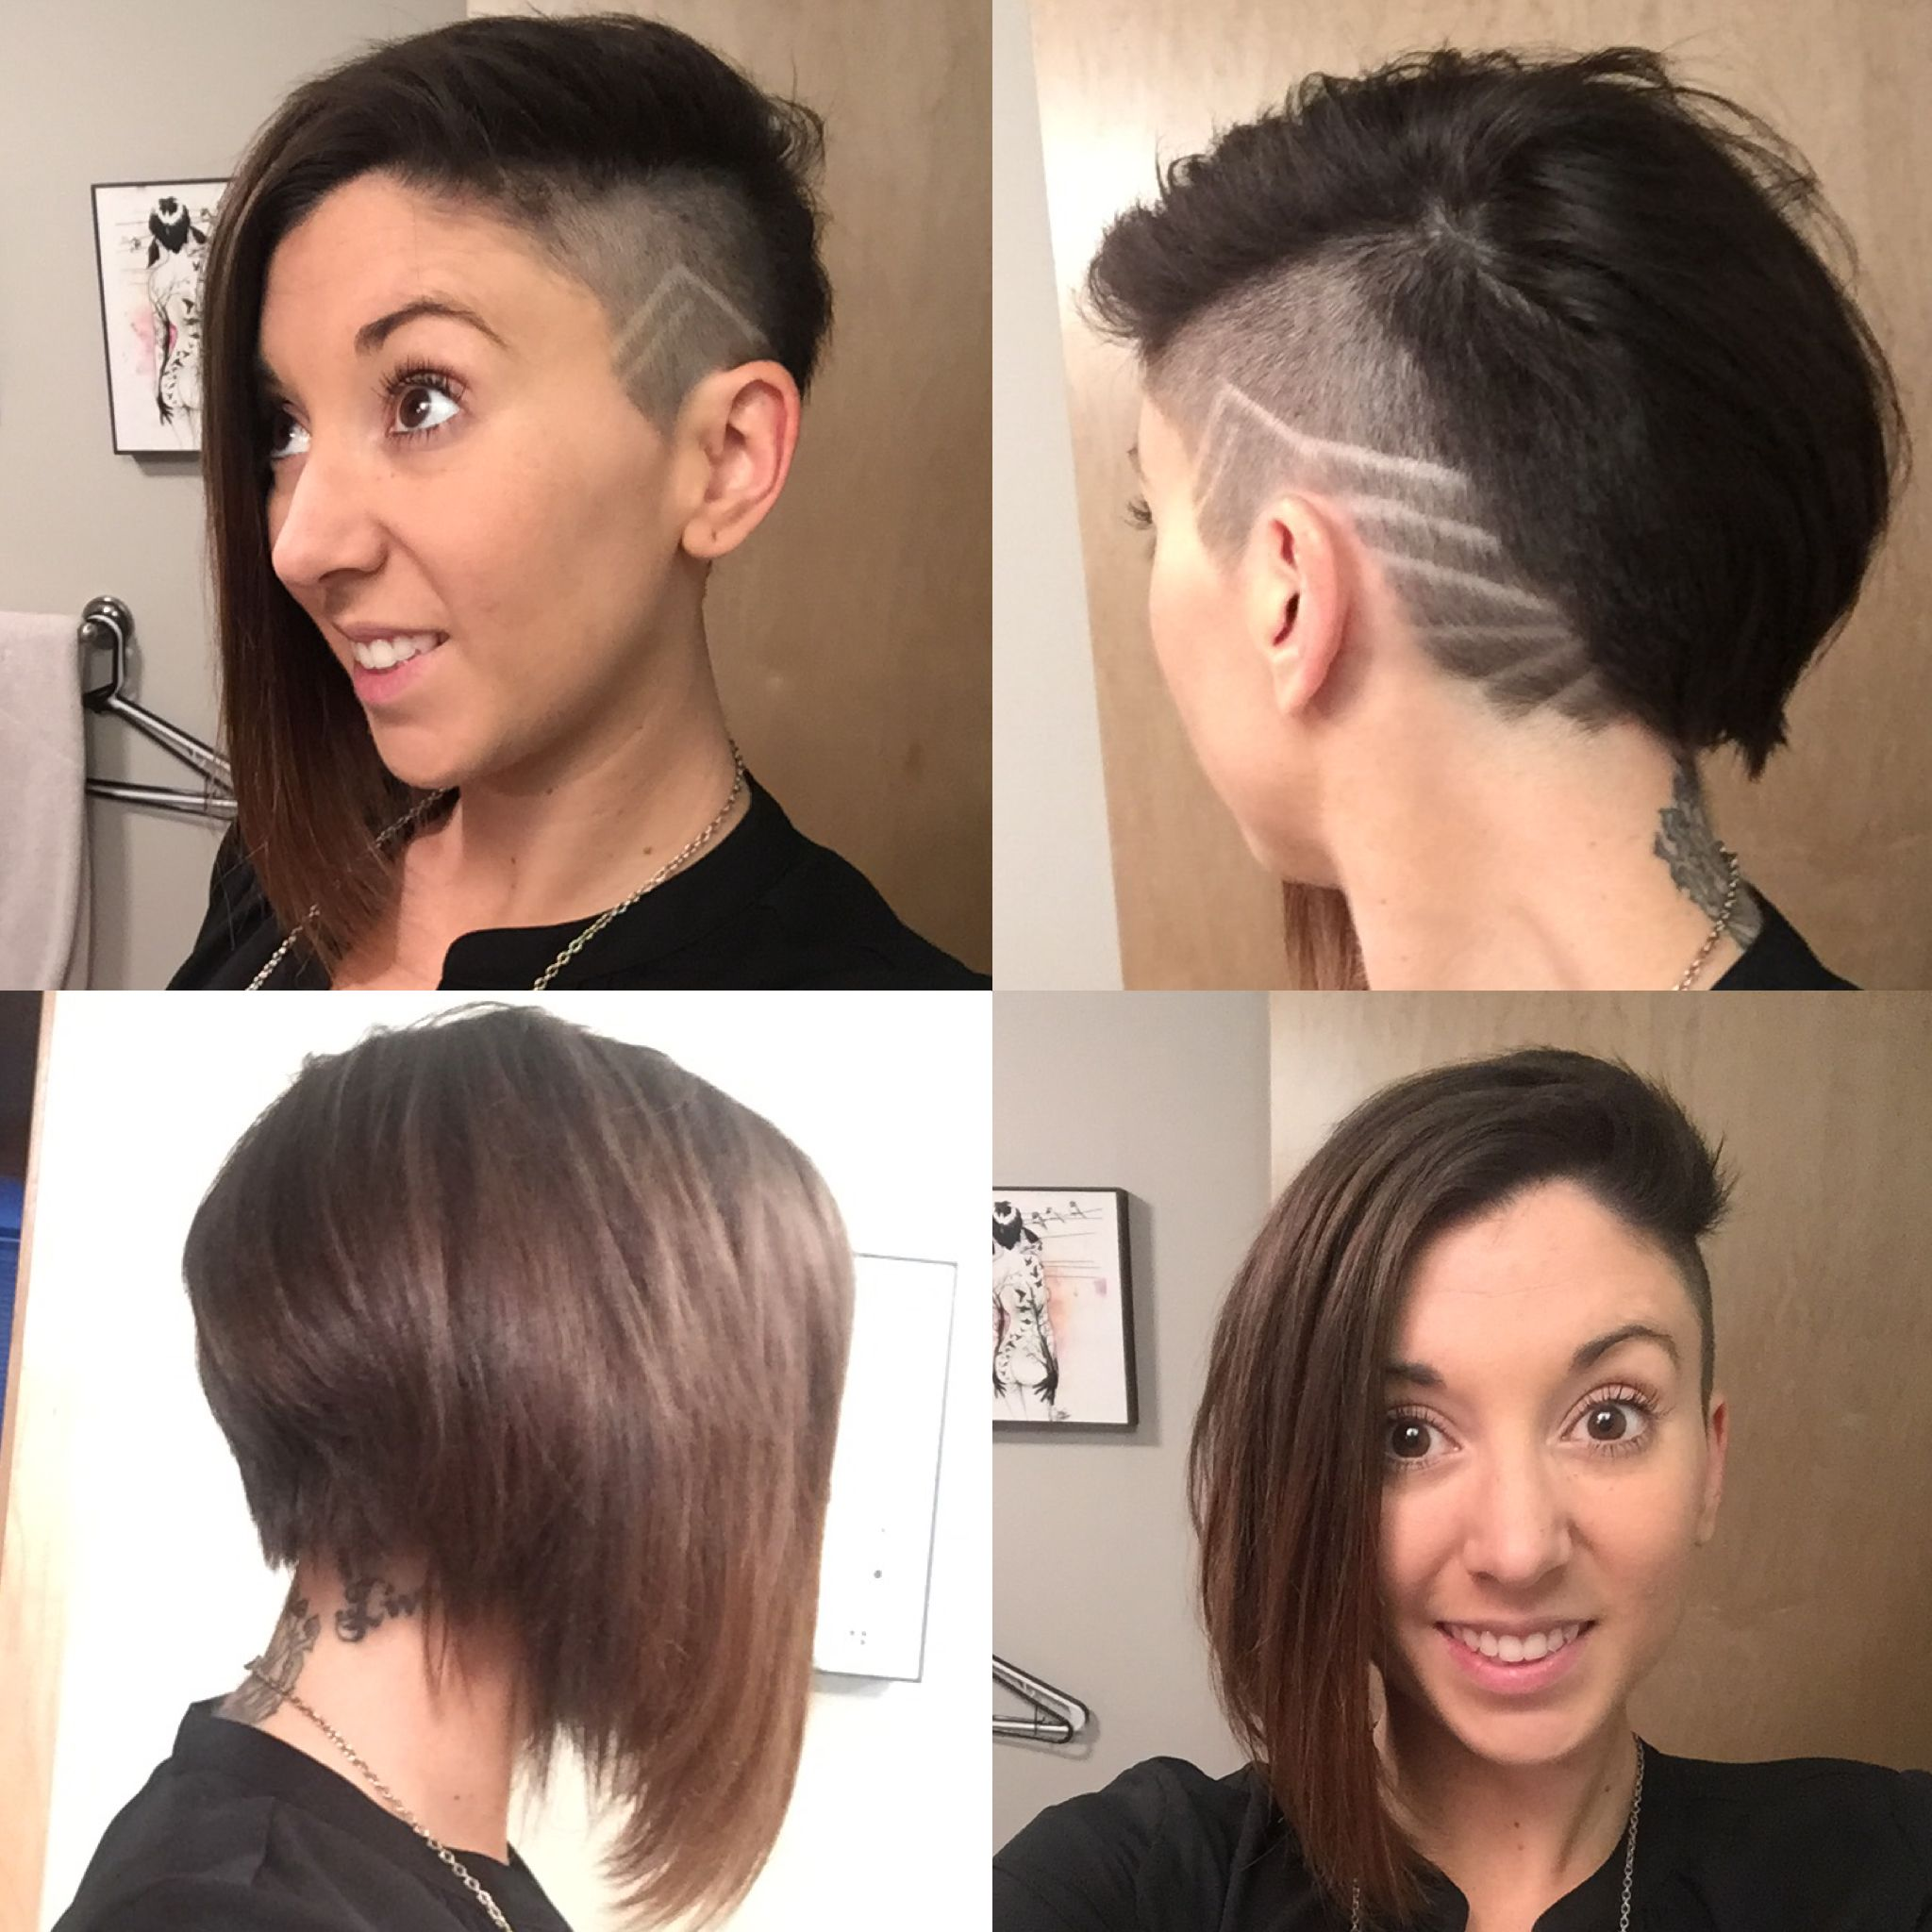 Hairstyle - Shaved side with design and angled bob | Hair styles, Cute hairstyles, Hair makeup